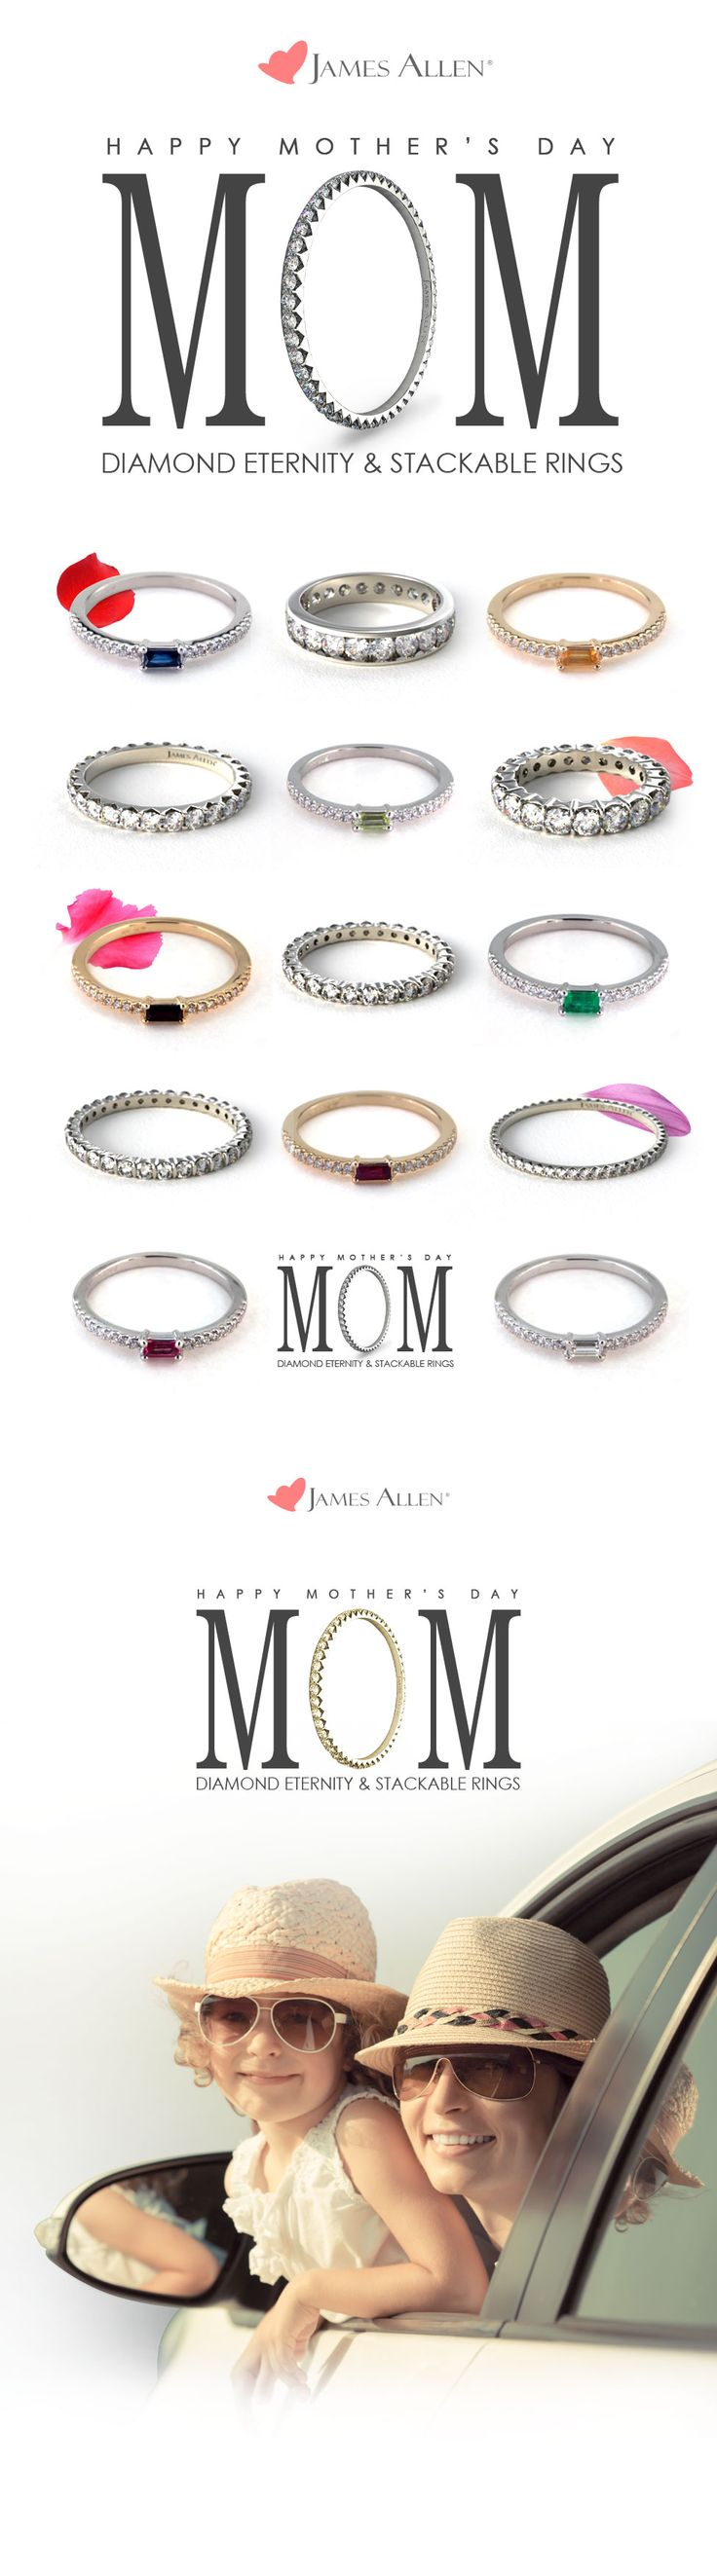 Mother's Day is coming up! Make it a sparkly one :-) Enjoy 15% Off Our Diamond Eternity & Stackable Rings! Use coupon code: MOM15 *Offer doesn't include loose diamonds and/or gemstones. Promotion ends Sunday, May 10th, 2015 at 11:59 PST. Cannot be combined with any other offer. #jamesallenrings